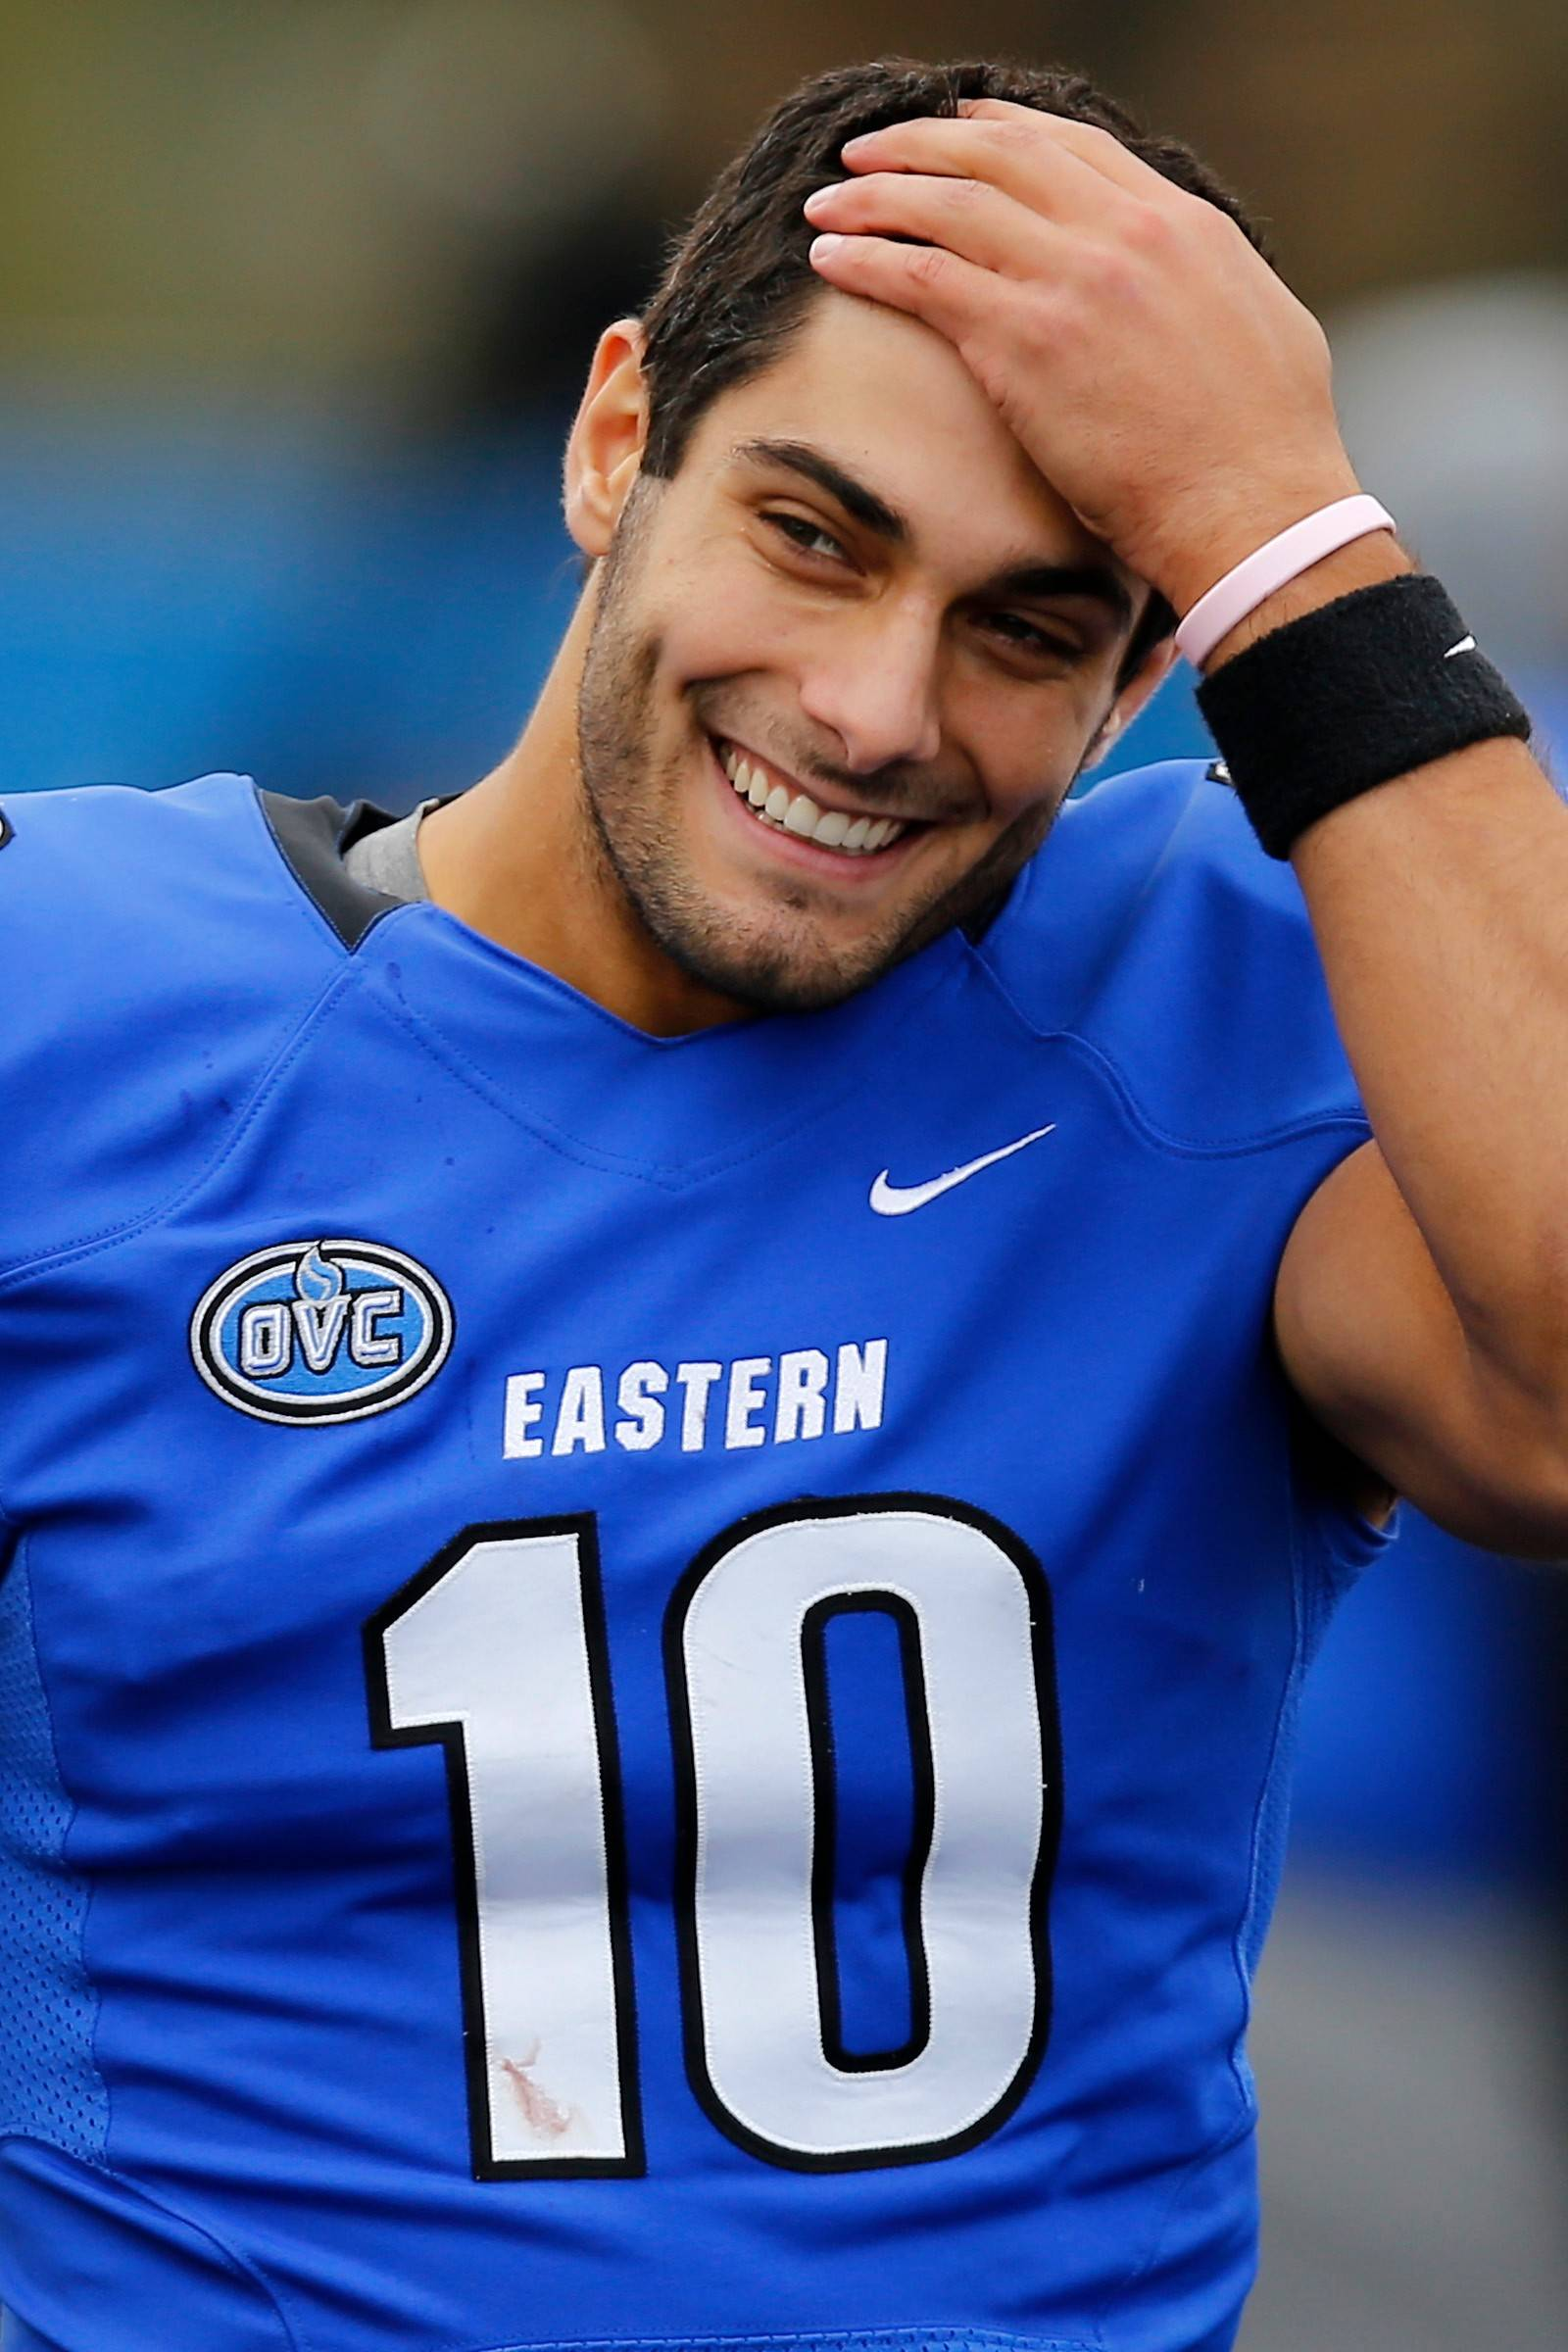 Eastern Illinois quarterback Jimmy Garoppolo on the sideline during the second half against Tennessee Tech at O'Brien Field in Charleston.